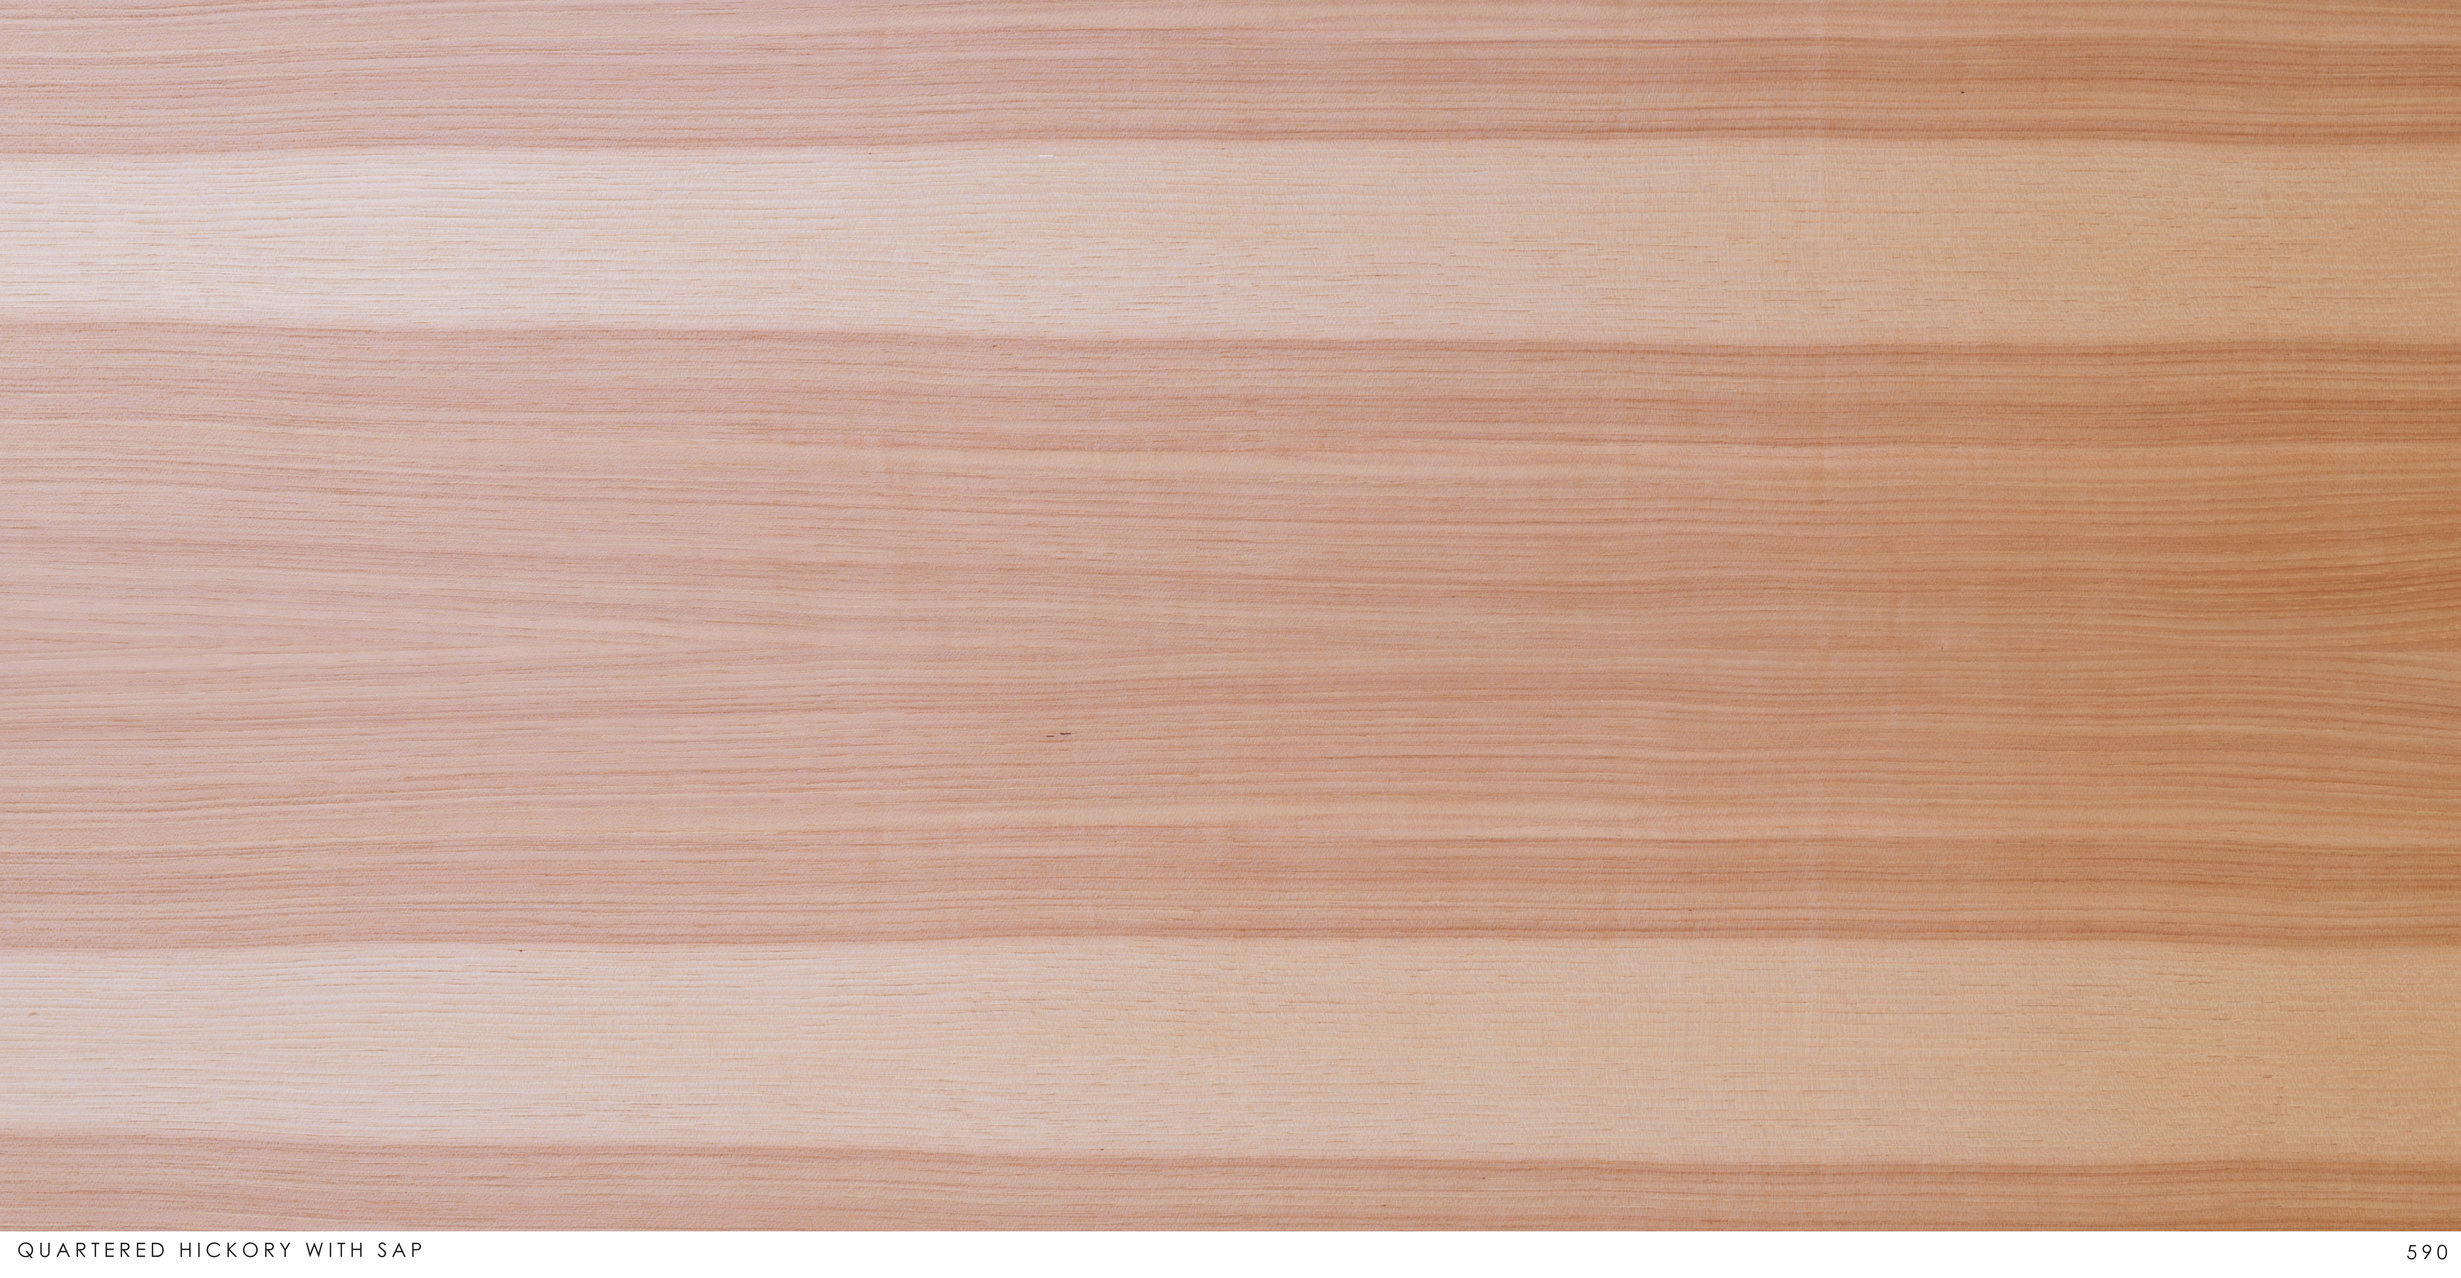 QUARTERED HICKORY WITH SAP 590.jpg